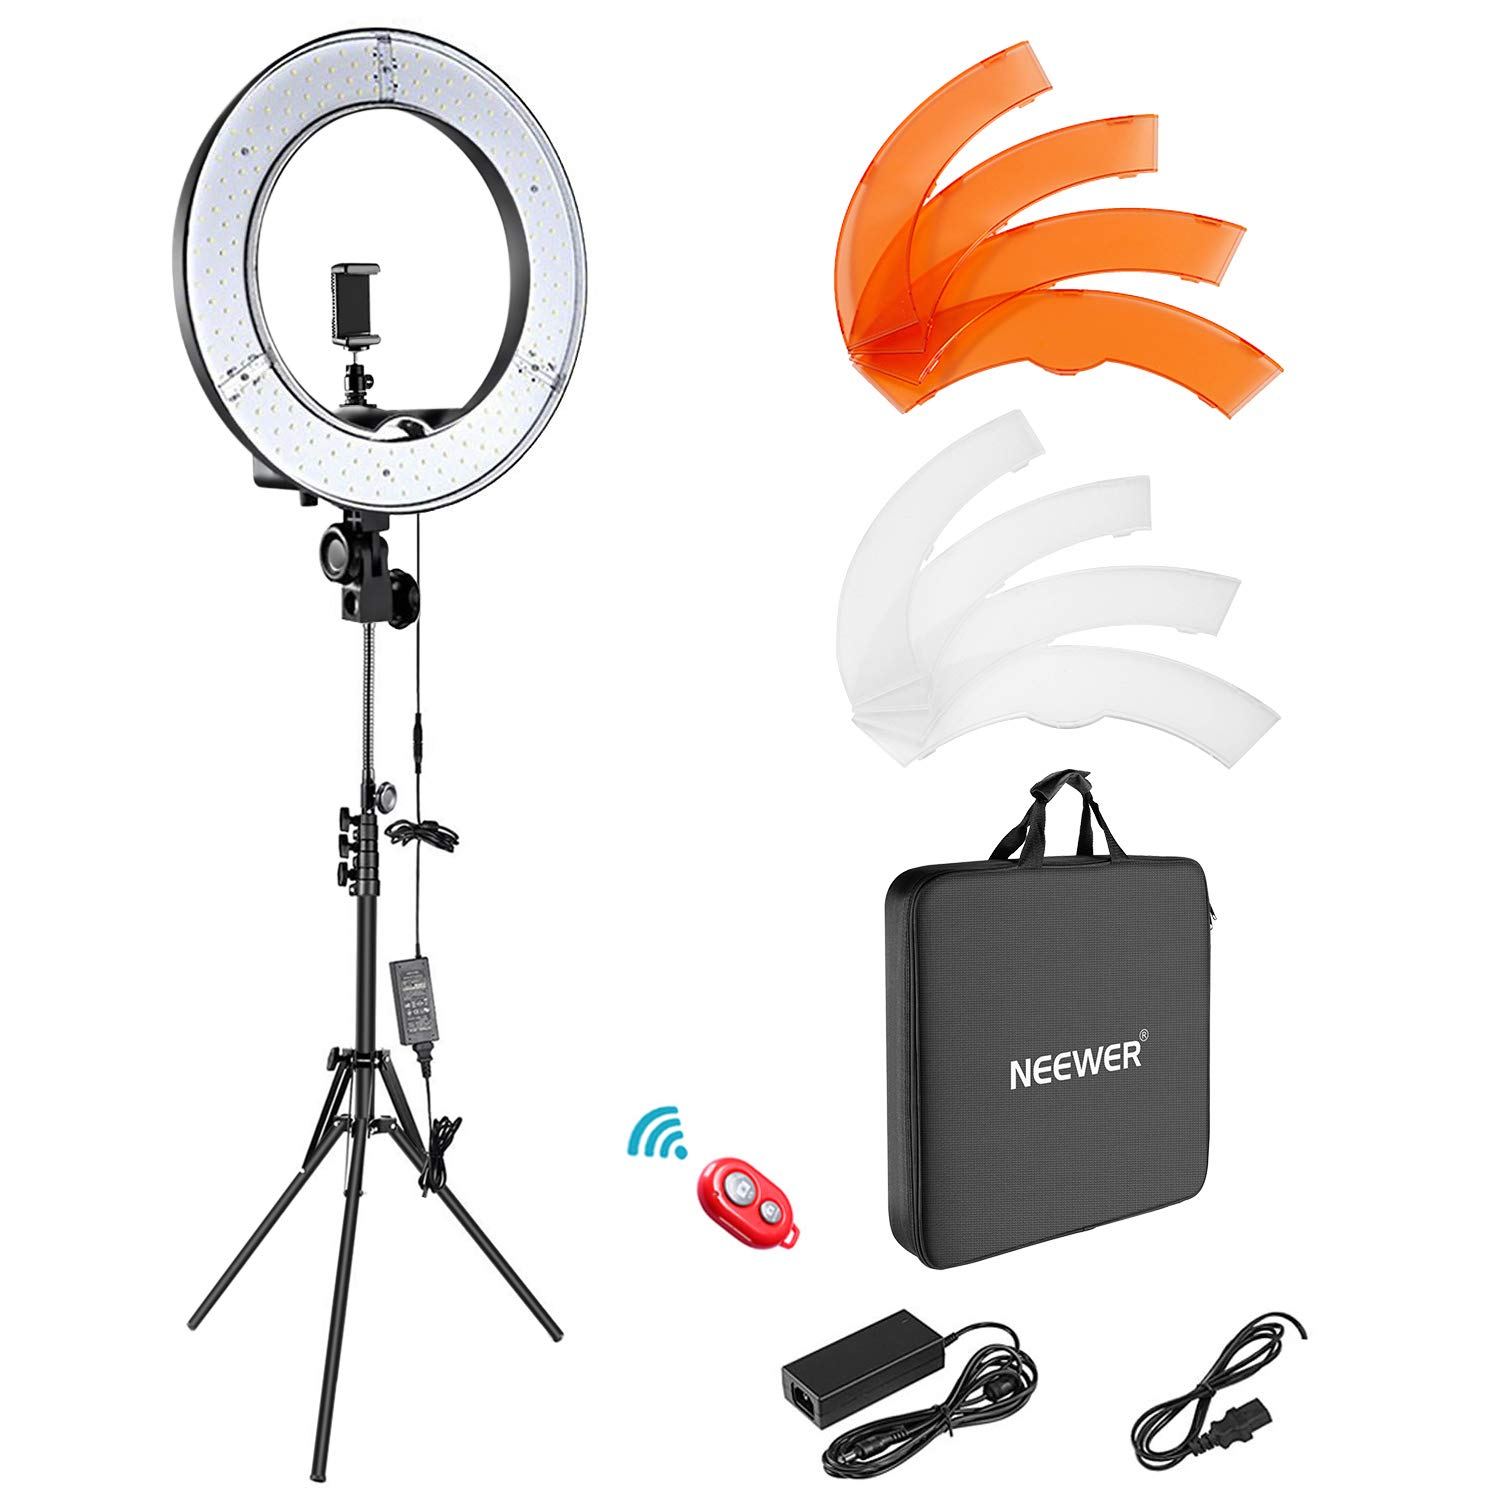 Neewer Ring Light Kit:18''/48cm Outer 55W 5500K Dimmable LED Ring Light, Light Stand, Carrying Bag for Camera,Smartphone,YouTube,Self-Portrait Shooting by Neewer